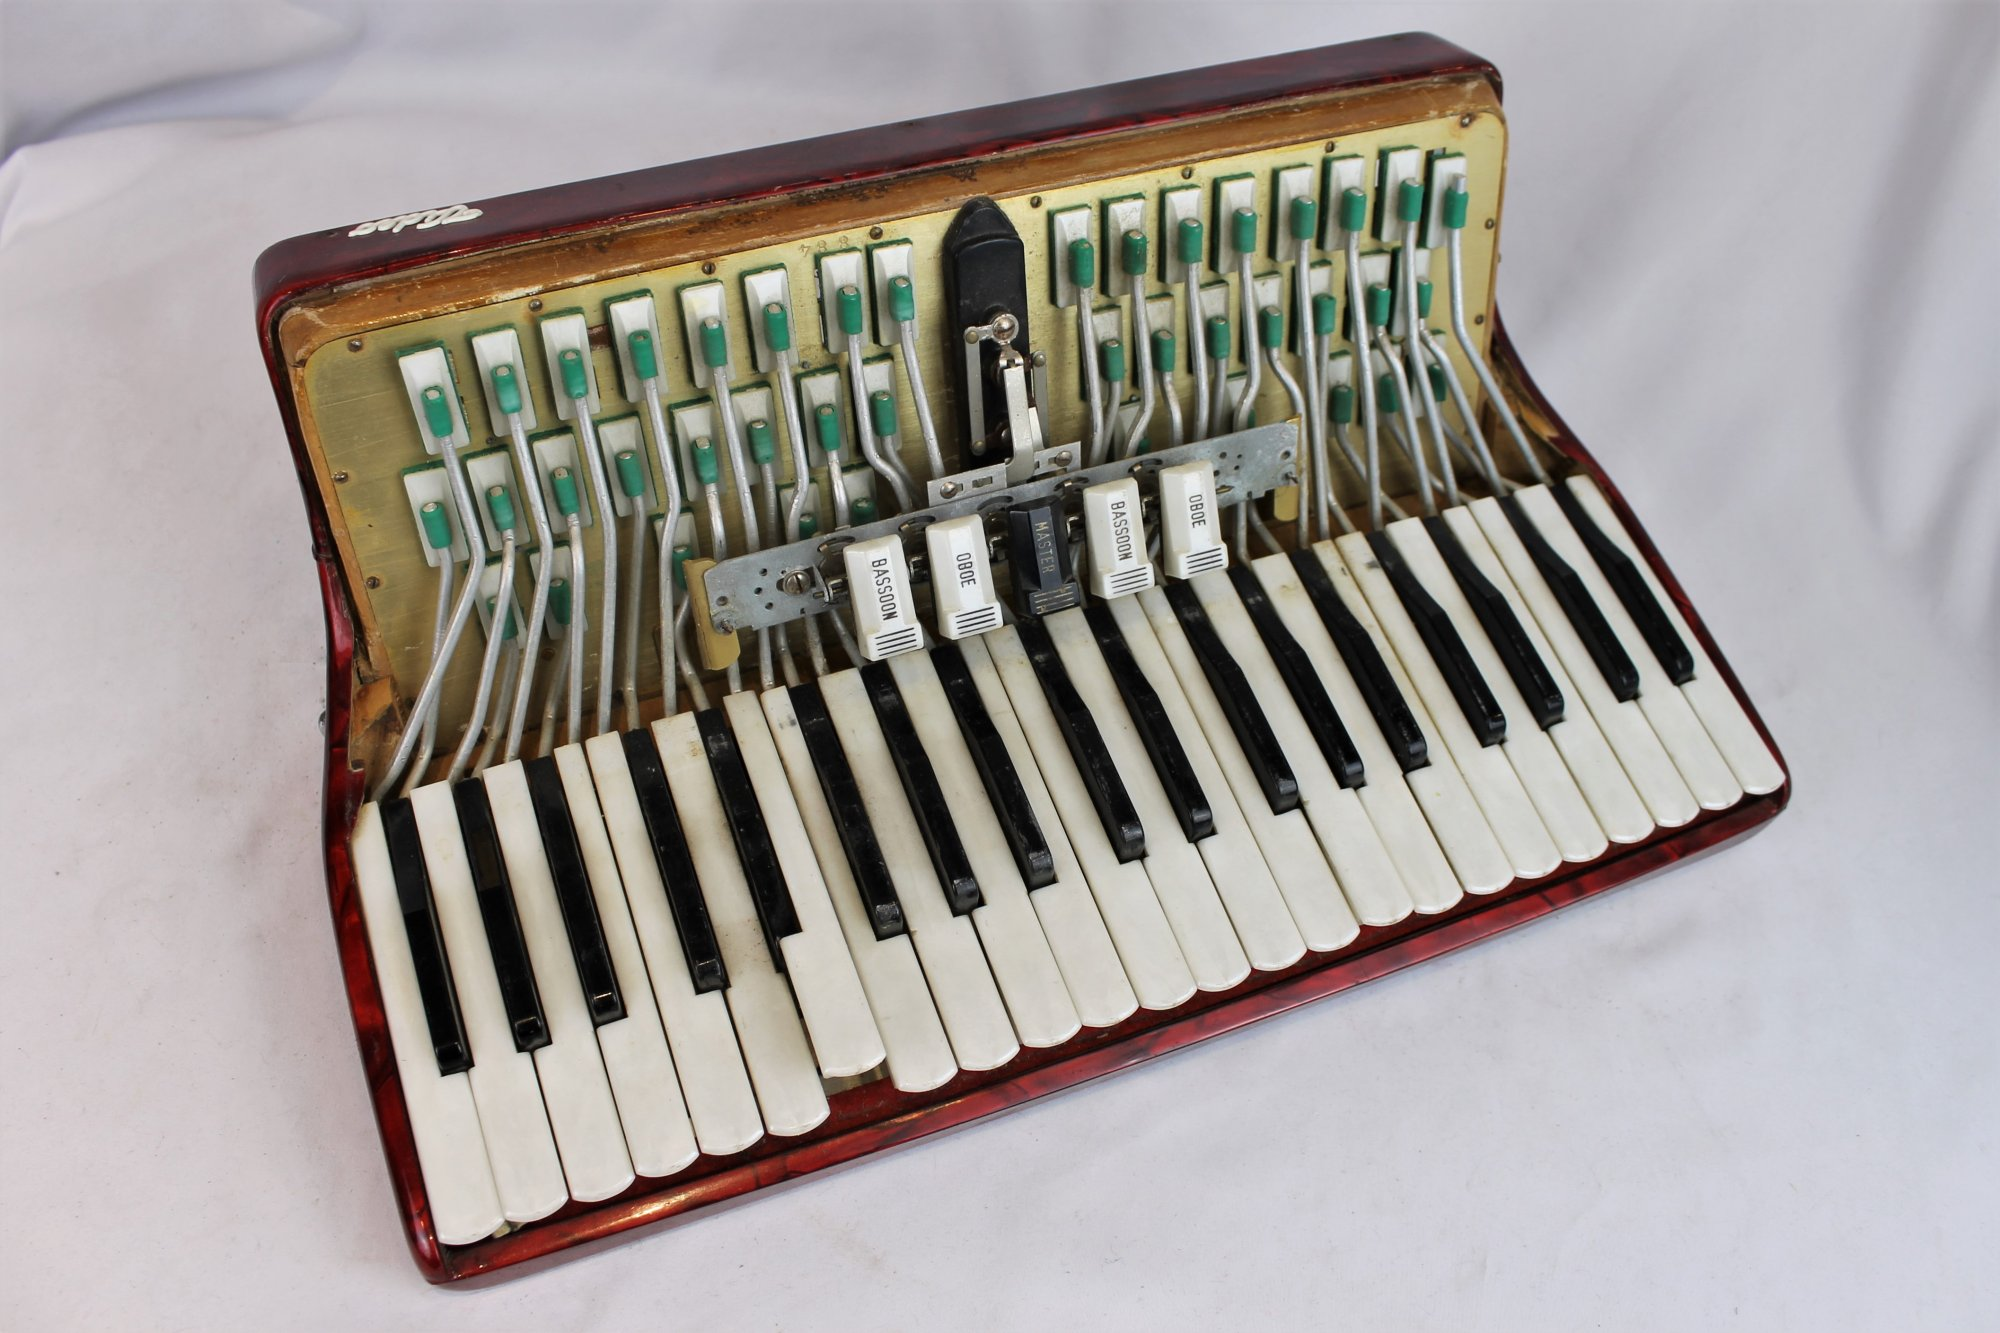 Crucianelli Video Accordion Part - Red Treble Section 18.33 x 9 x 6.9